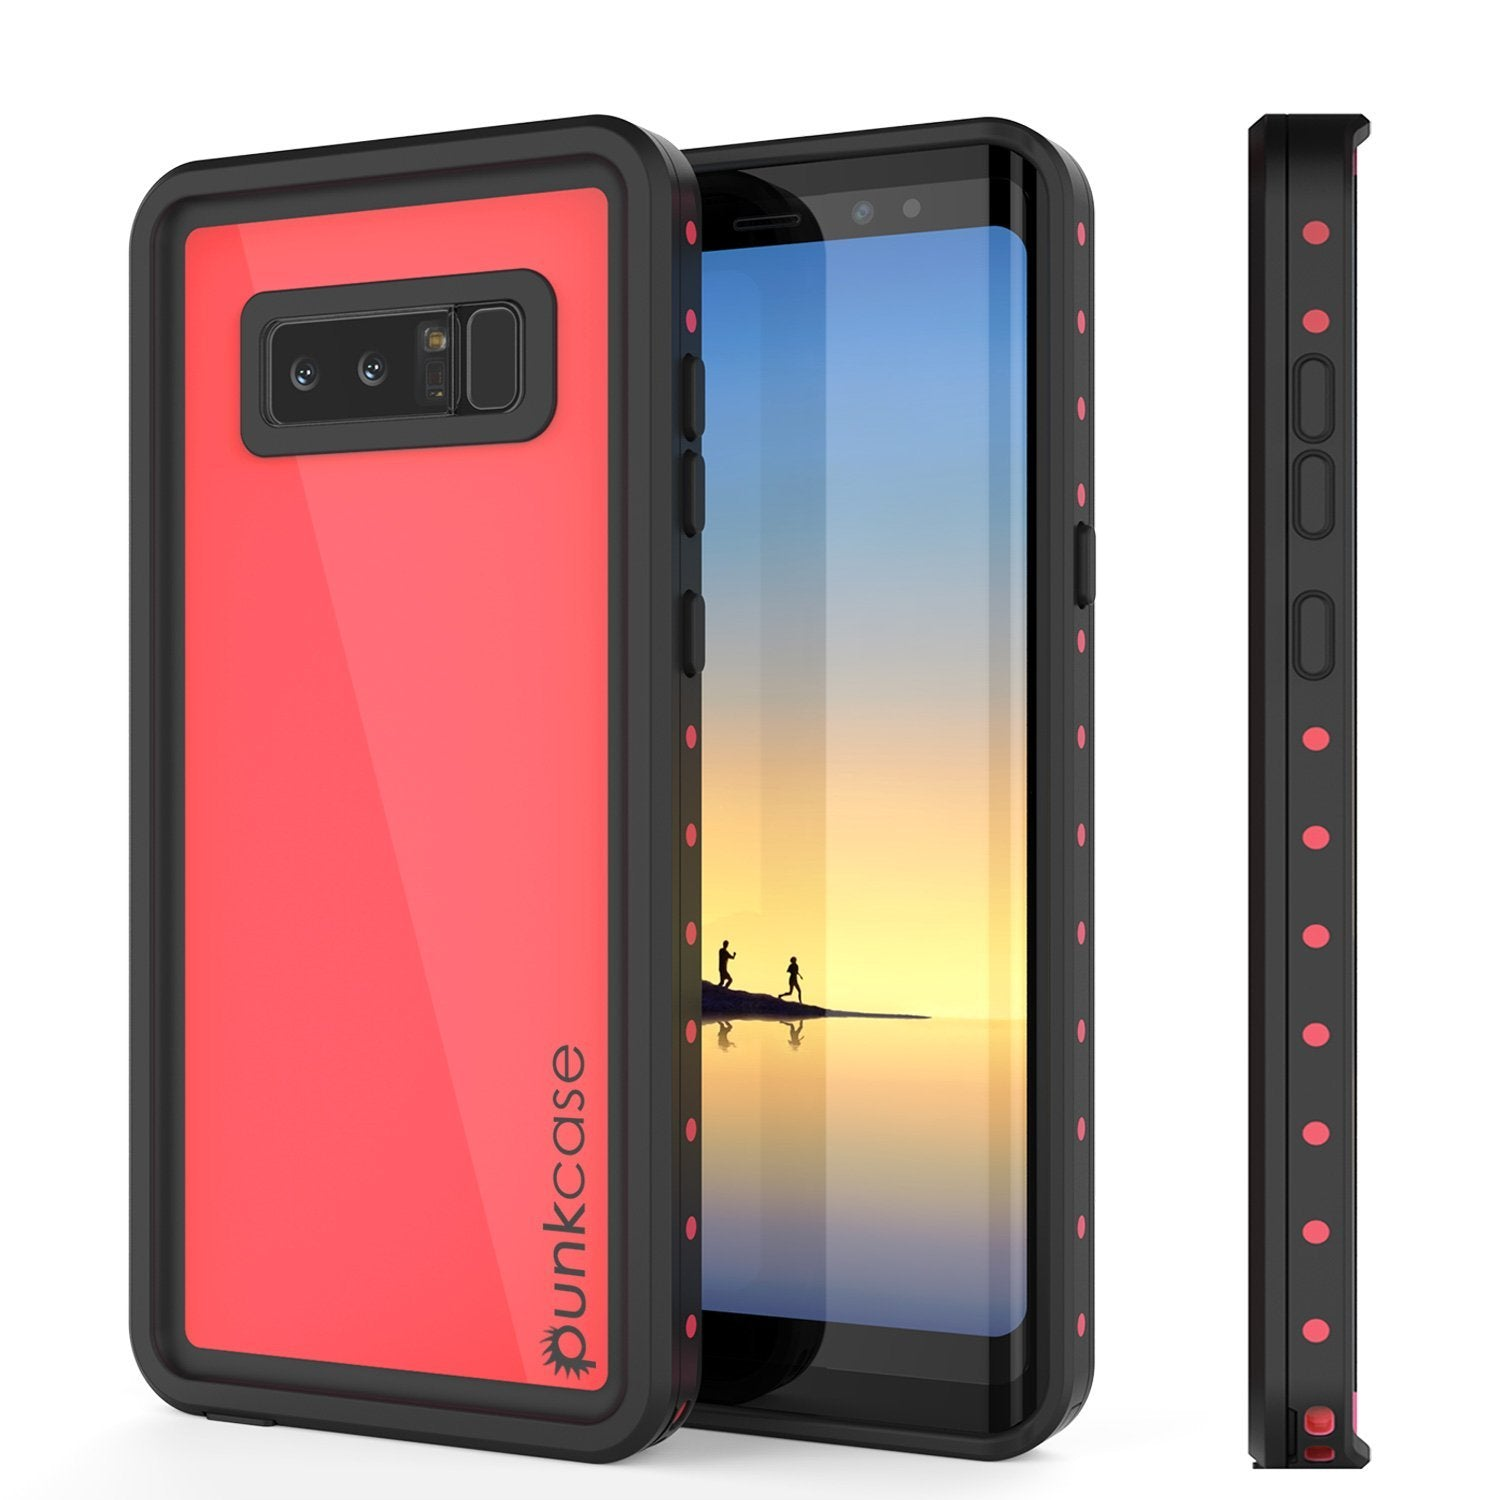 Galaxy Note 8 Waterproof Punkcase, StudStar Series Armor Cover [PINK]